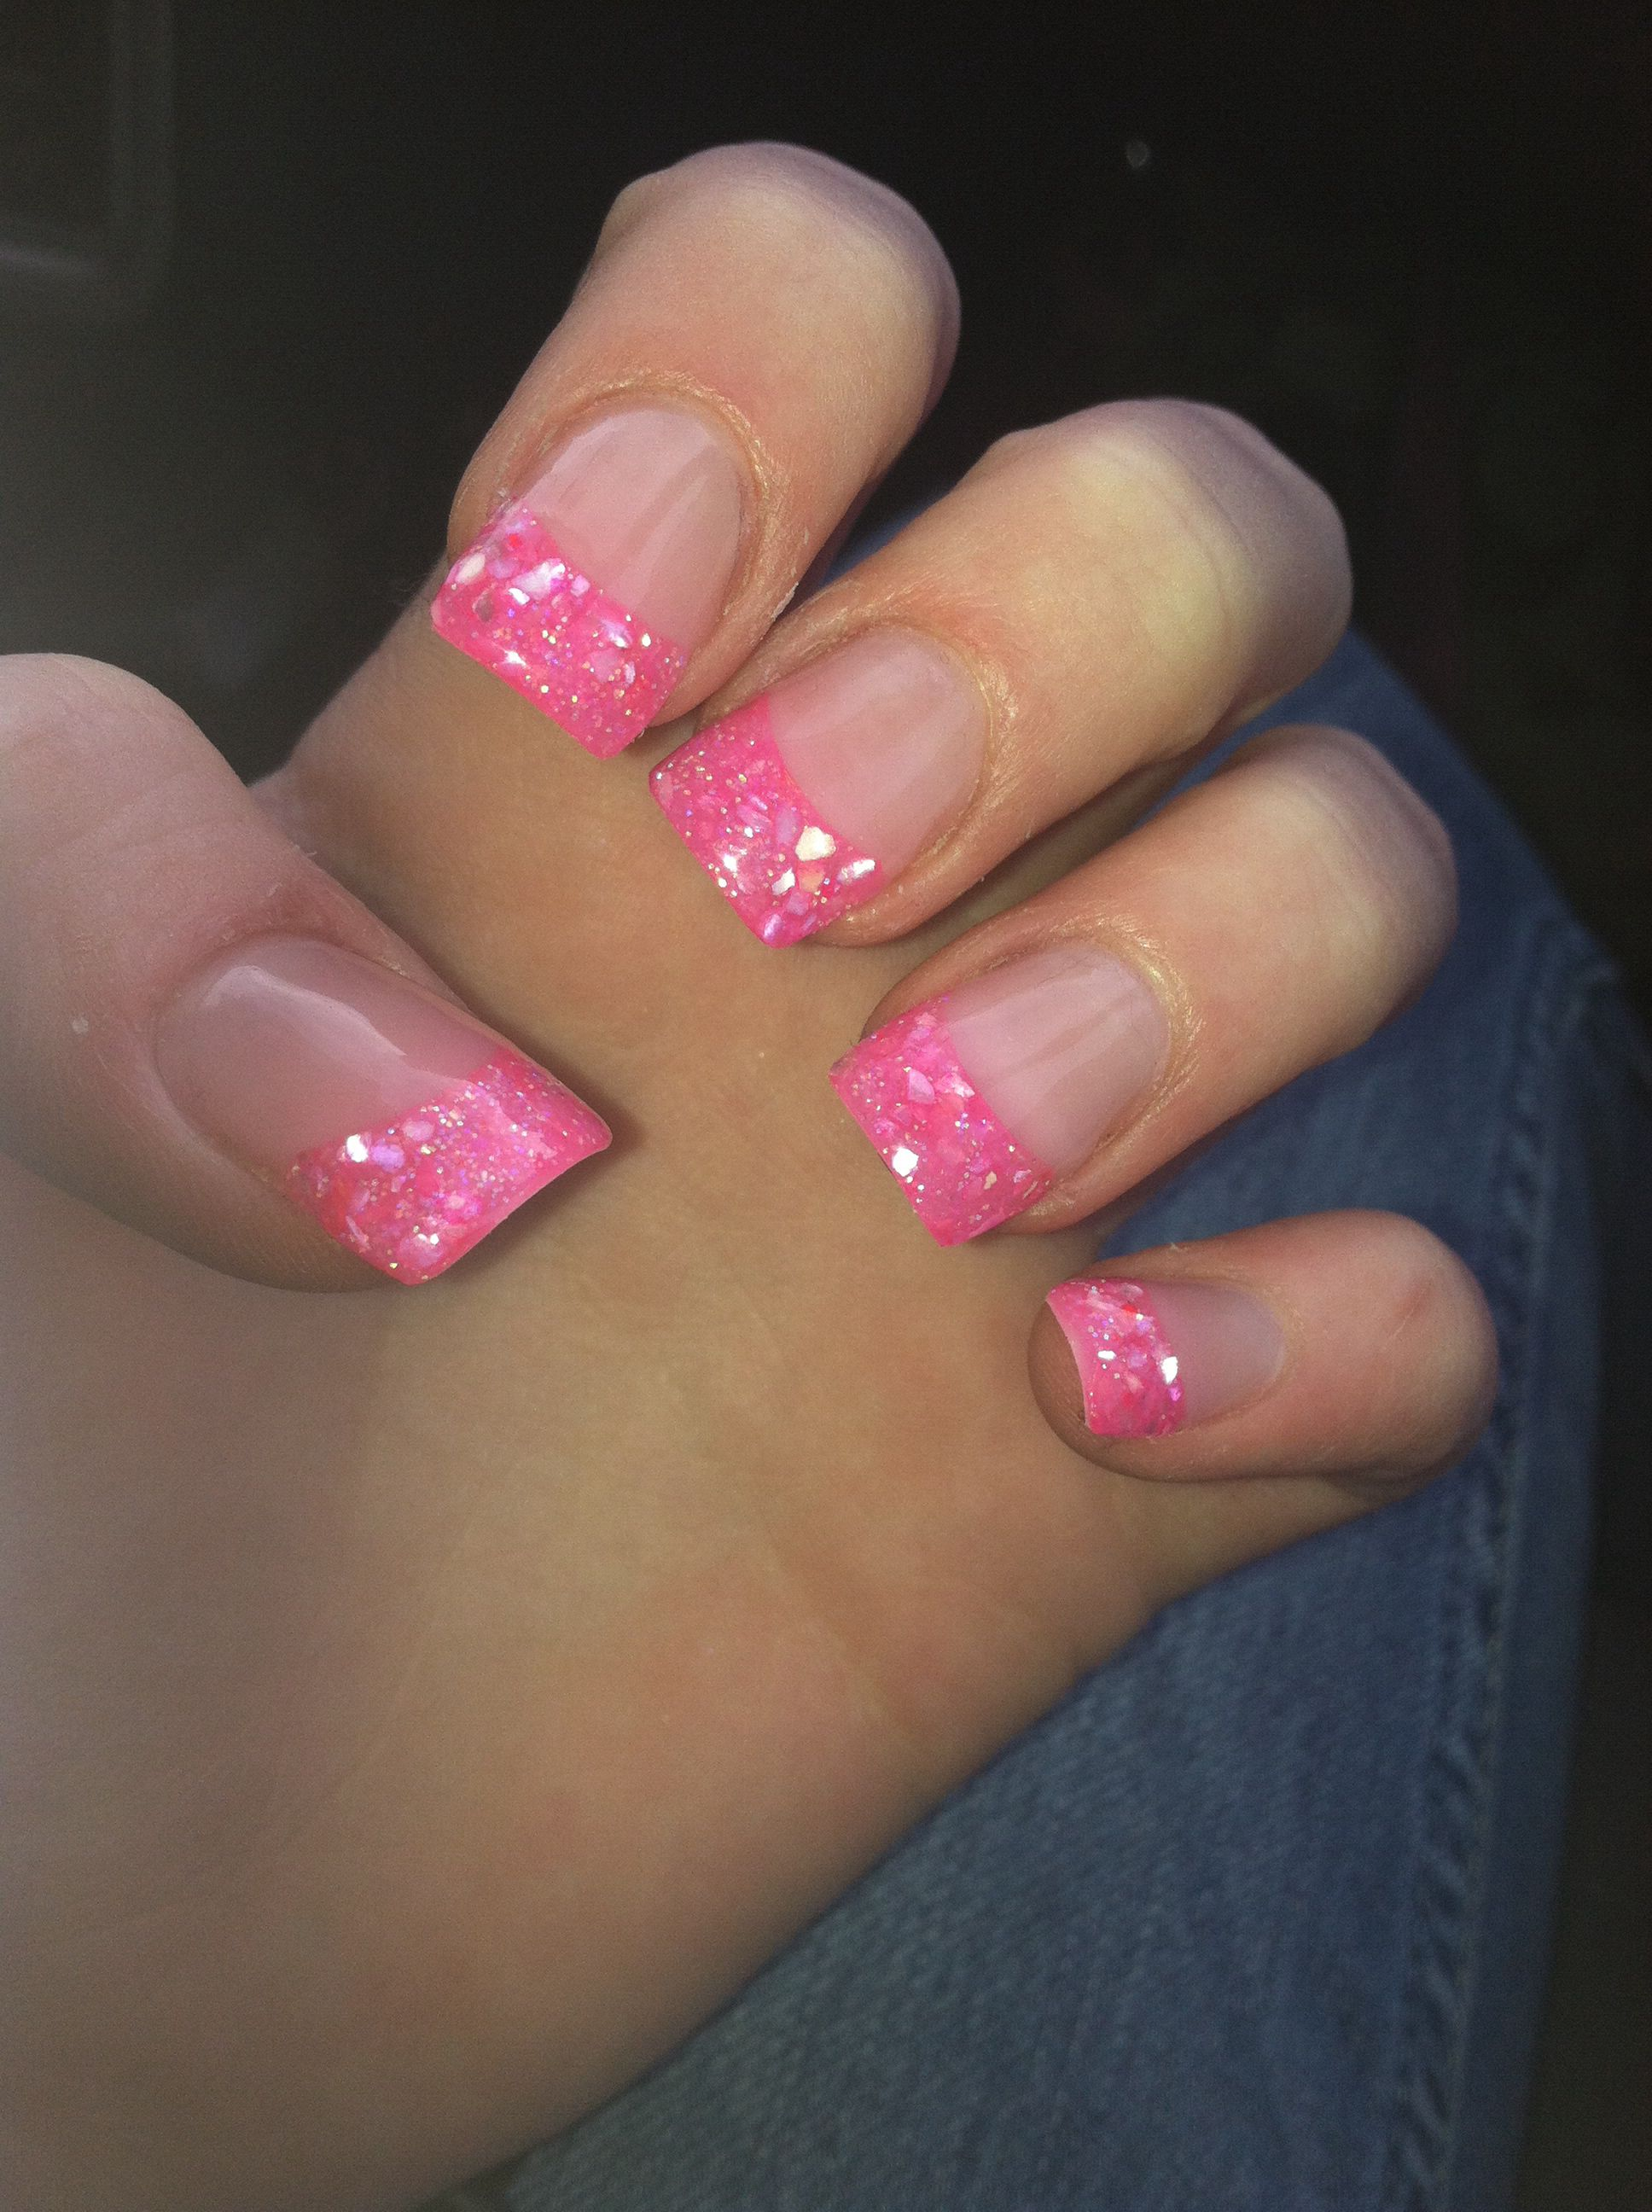 09a8dd851aef Solar nails tickle me pink color